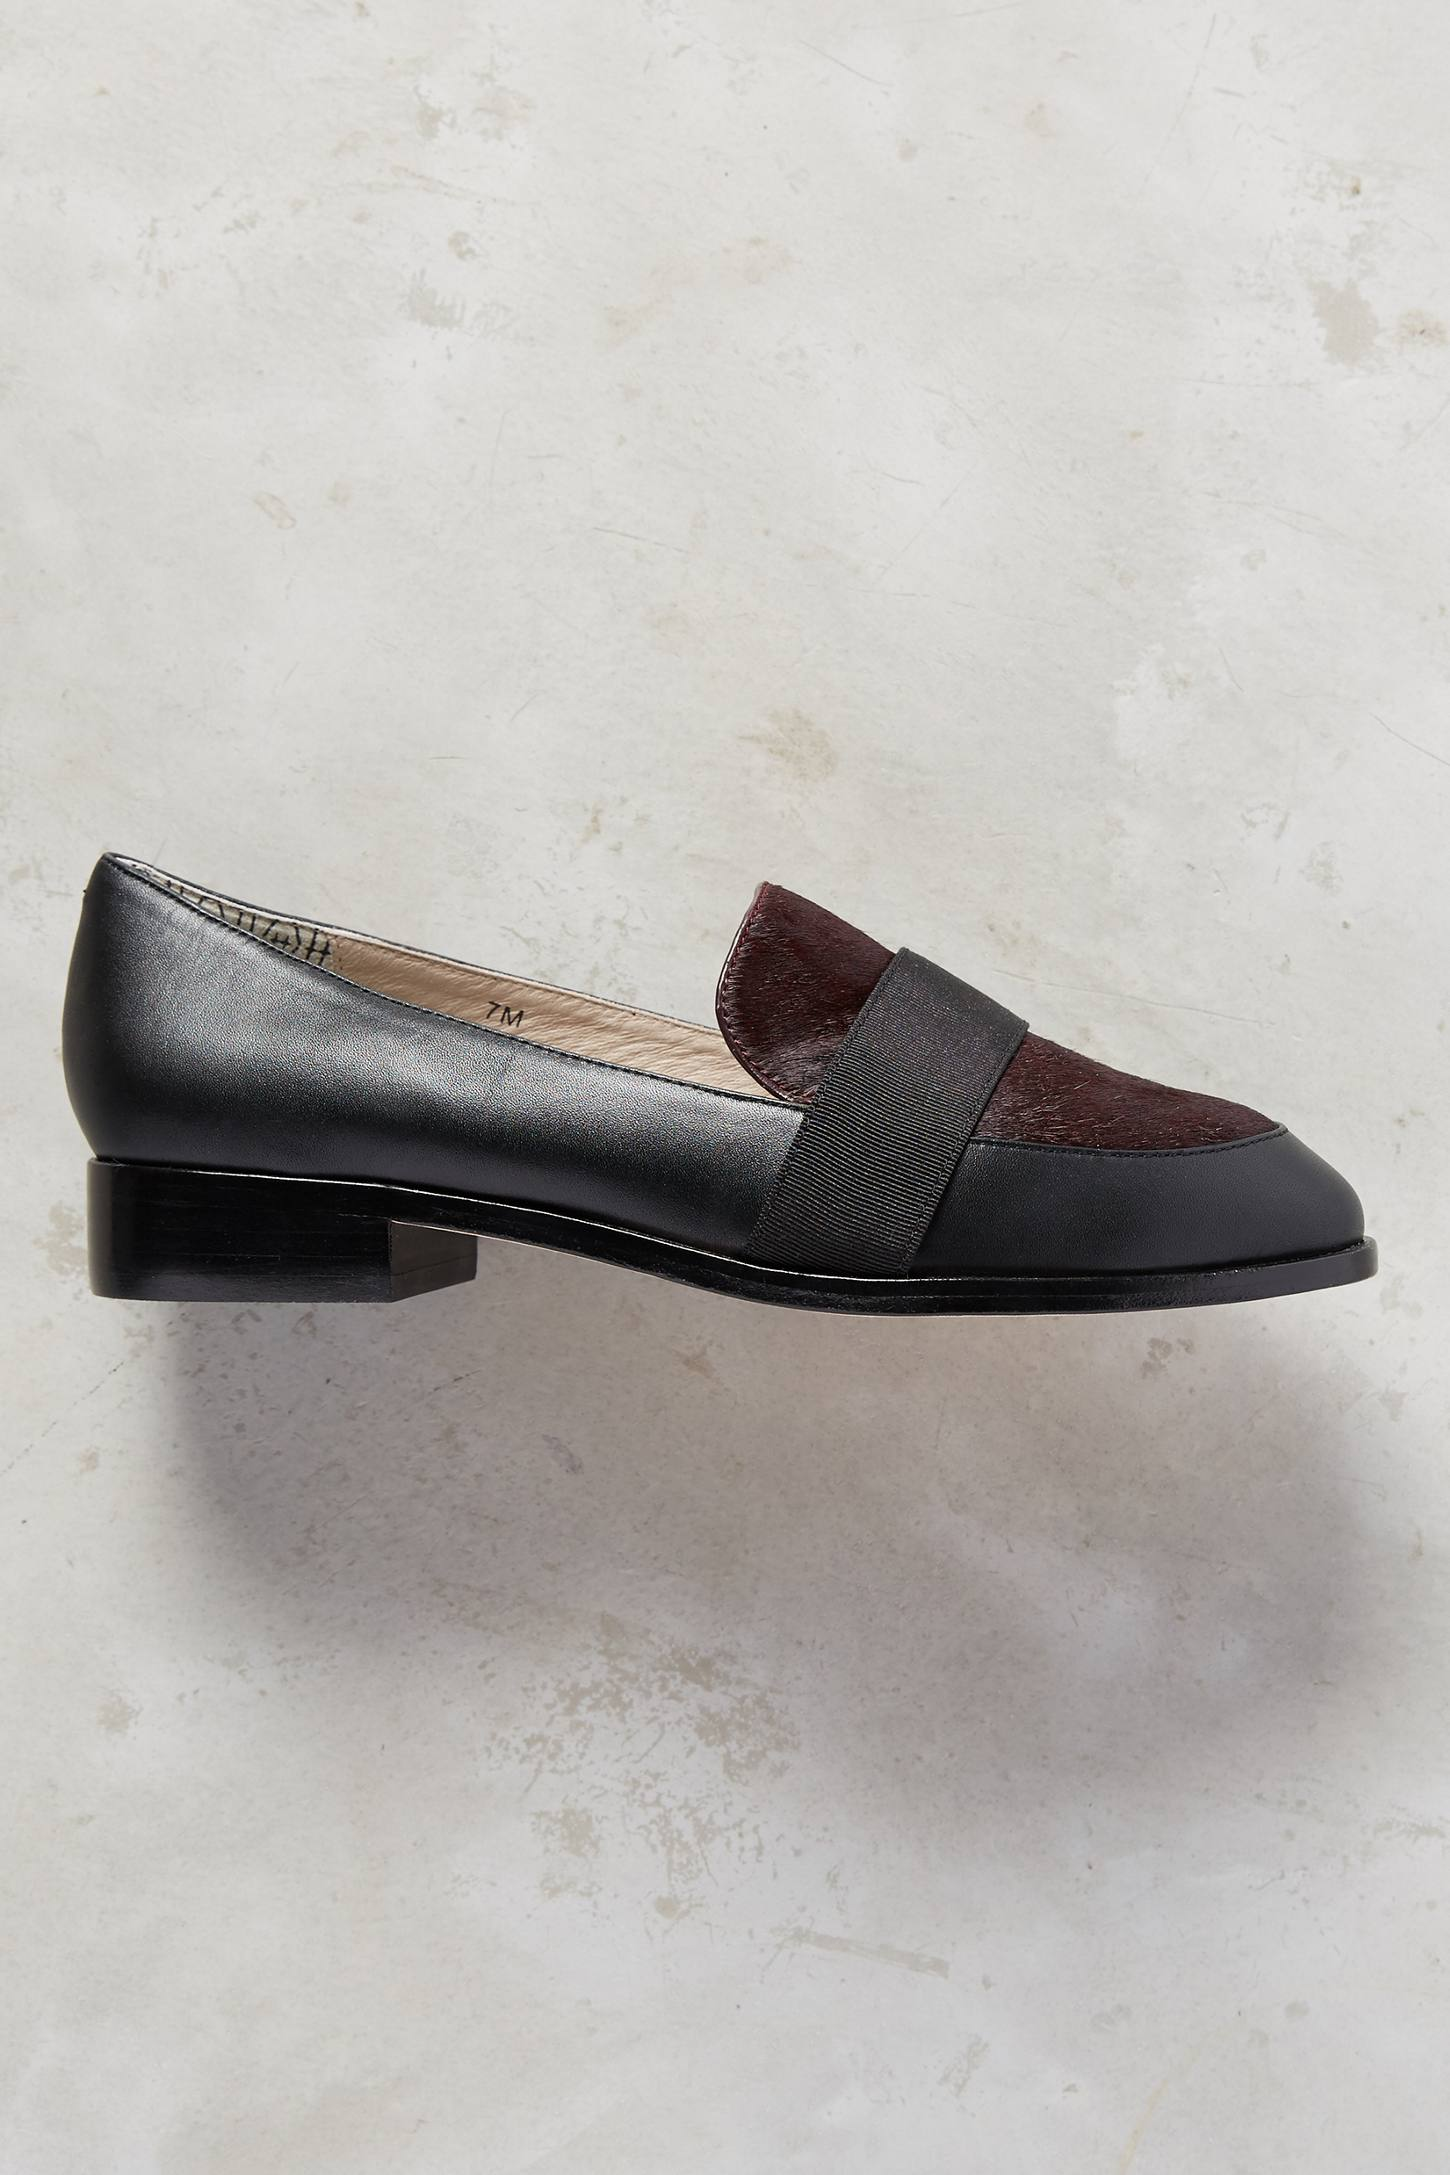 Matt Bernson Quincy Loafers